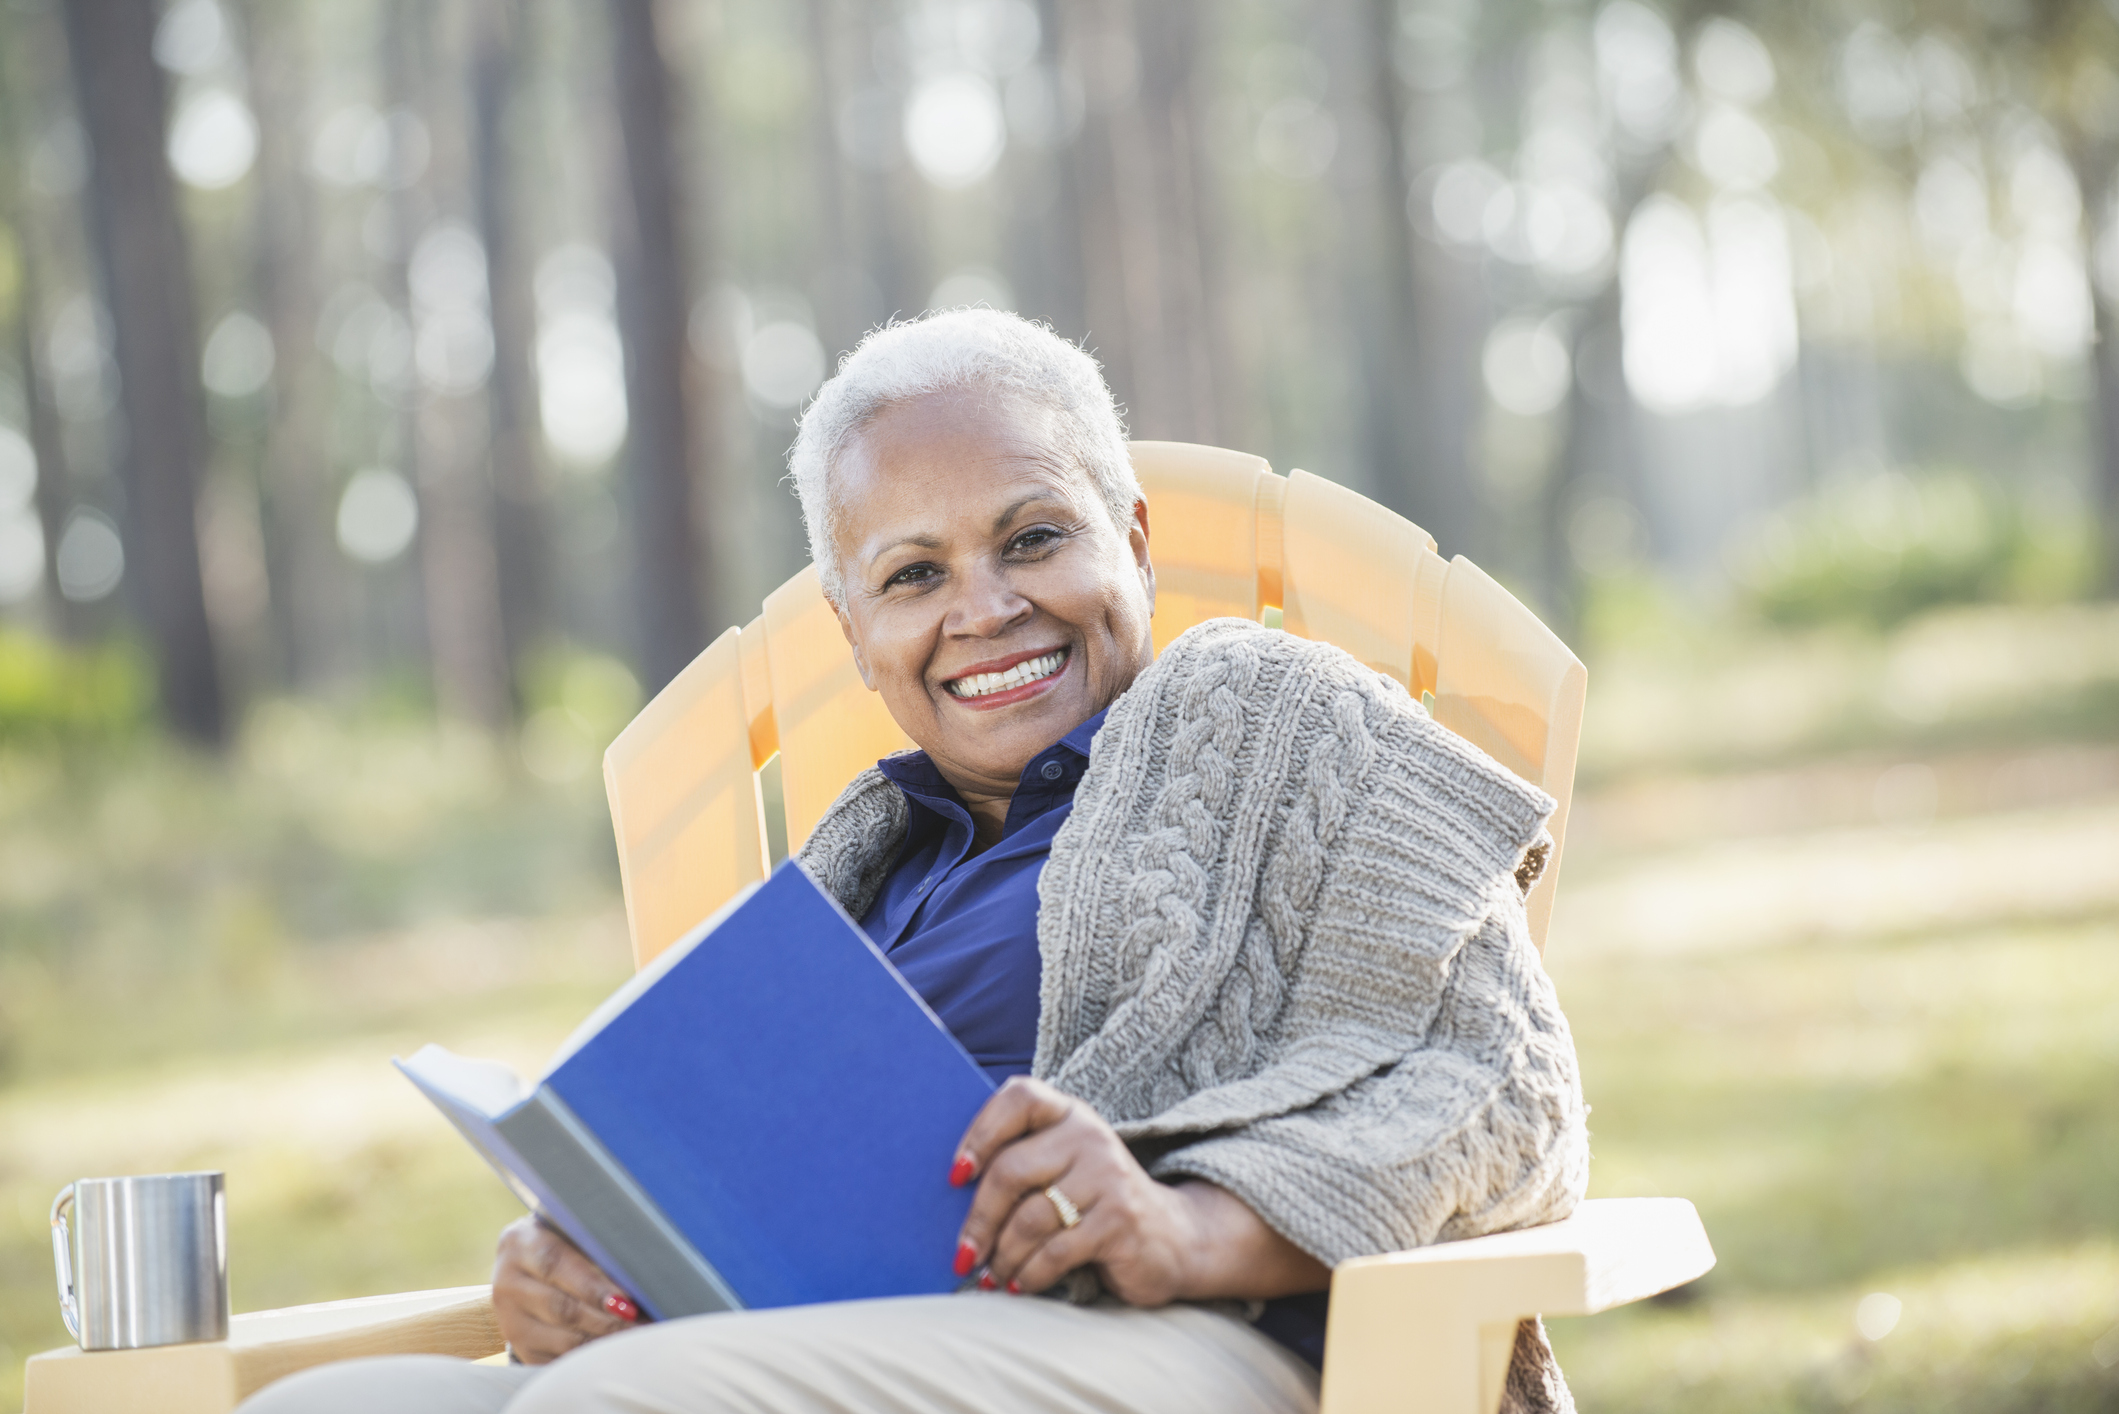 Women relaxes and celebrates her move to an assisted living community in autumn.